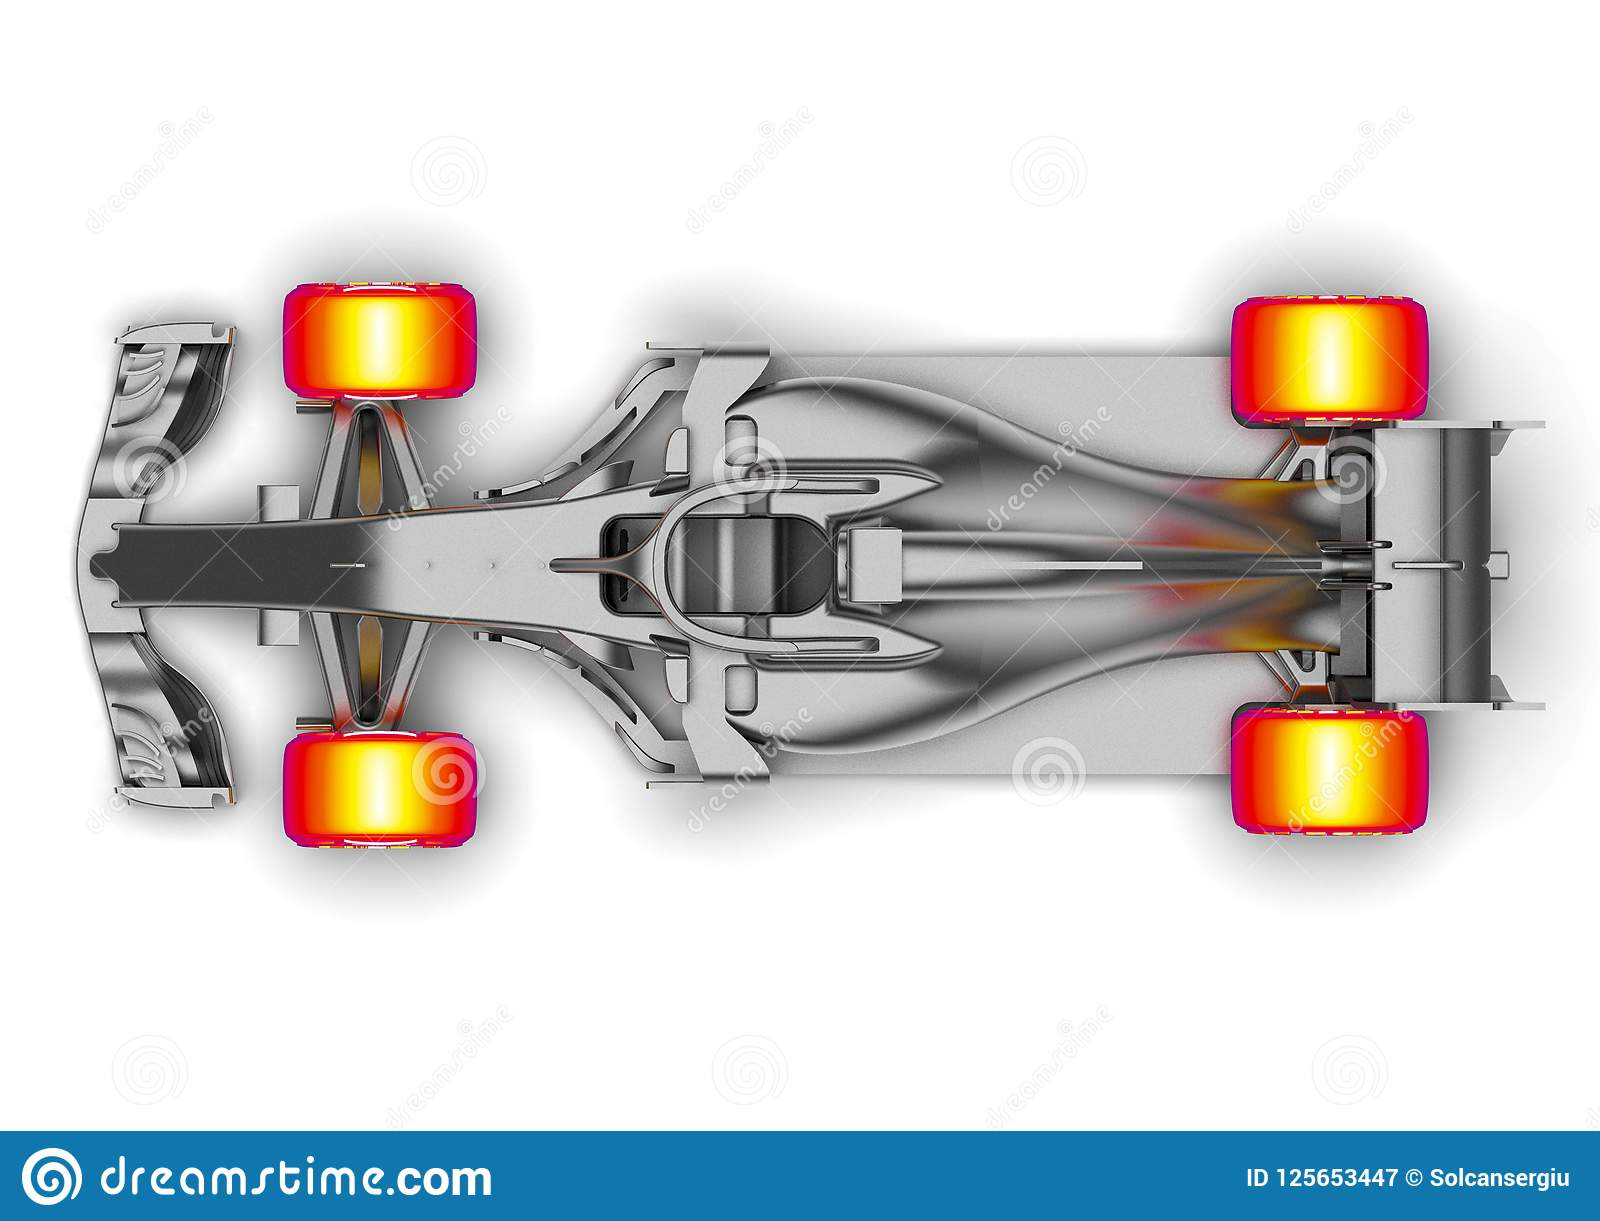 hight resolution of 3d render image representing an f1 car radiography